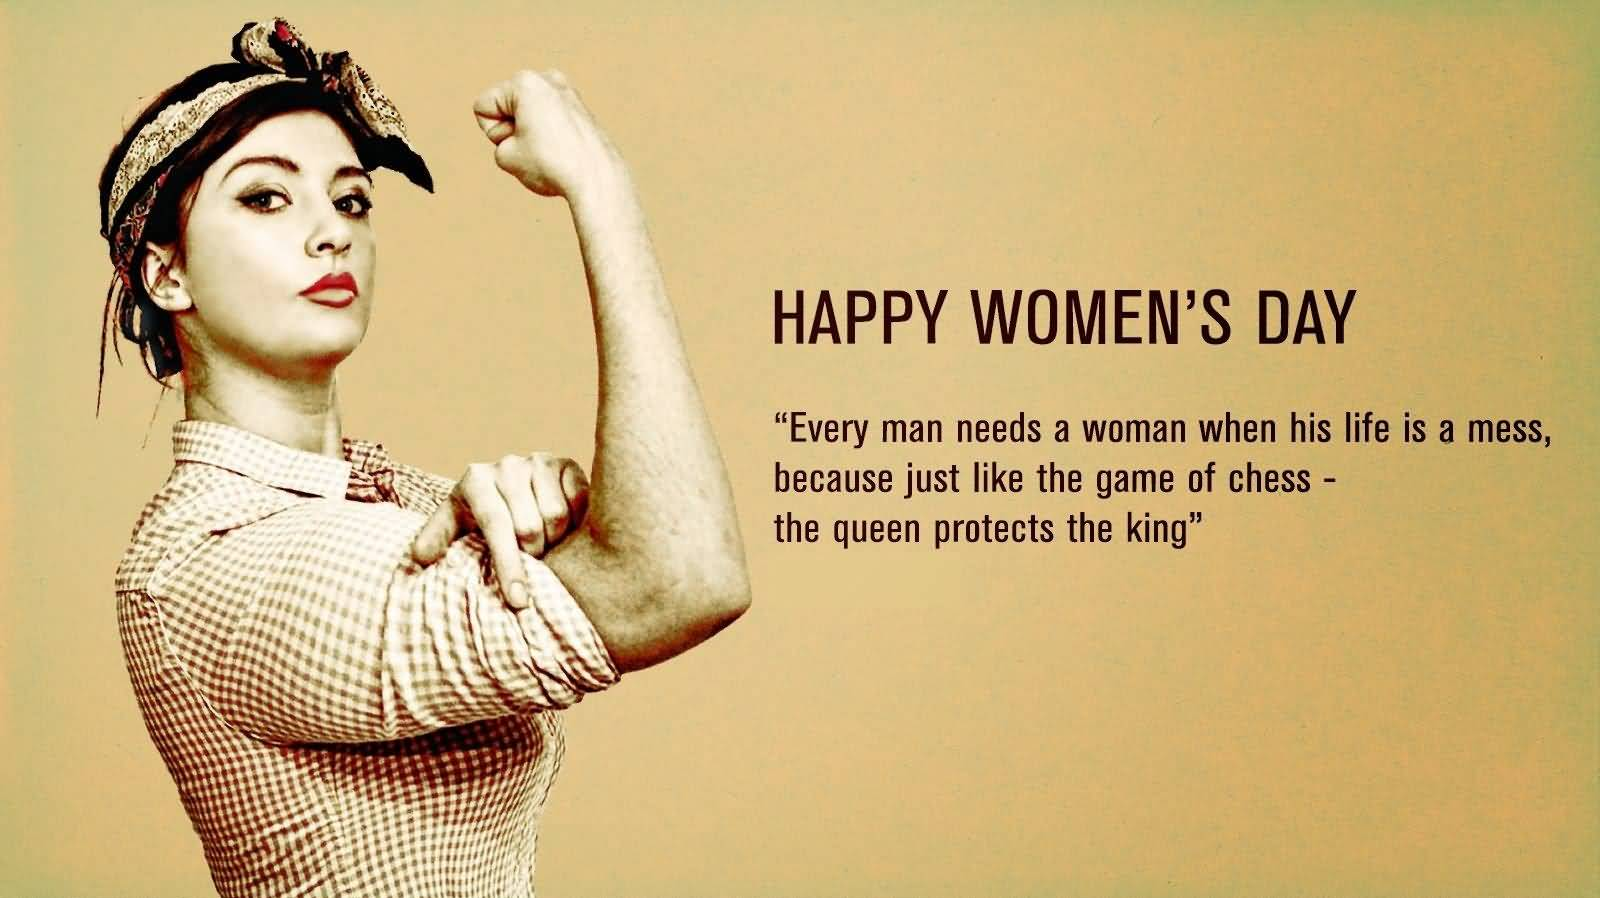 Day Quotes happy women's day every man need a women when his life is a mess